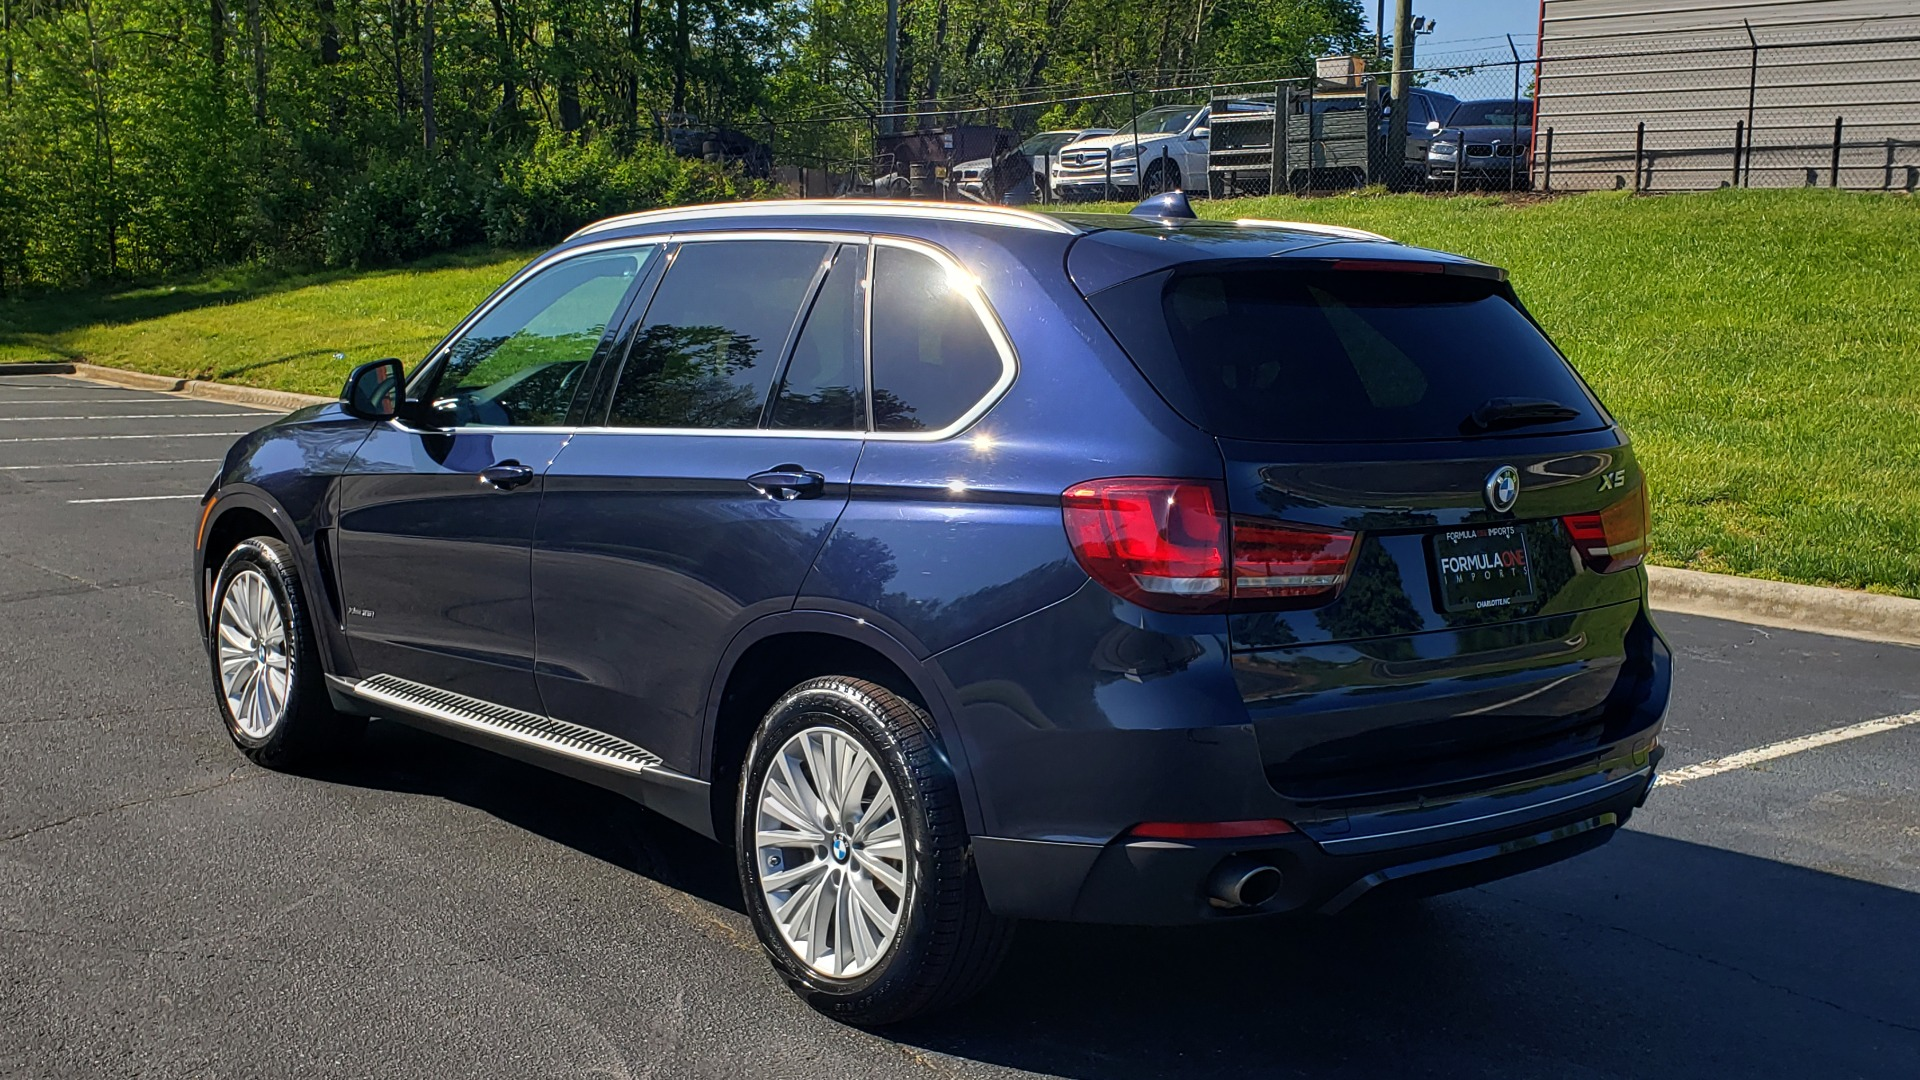 Used 2017 BMW X5 XDRIVE35I PREMIUM / LUXURY / NAV / SUNROOF / REARVIEW for sale $31,995 at Formula Imports in Charlotte NC 28227 3